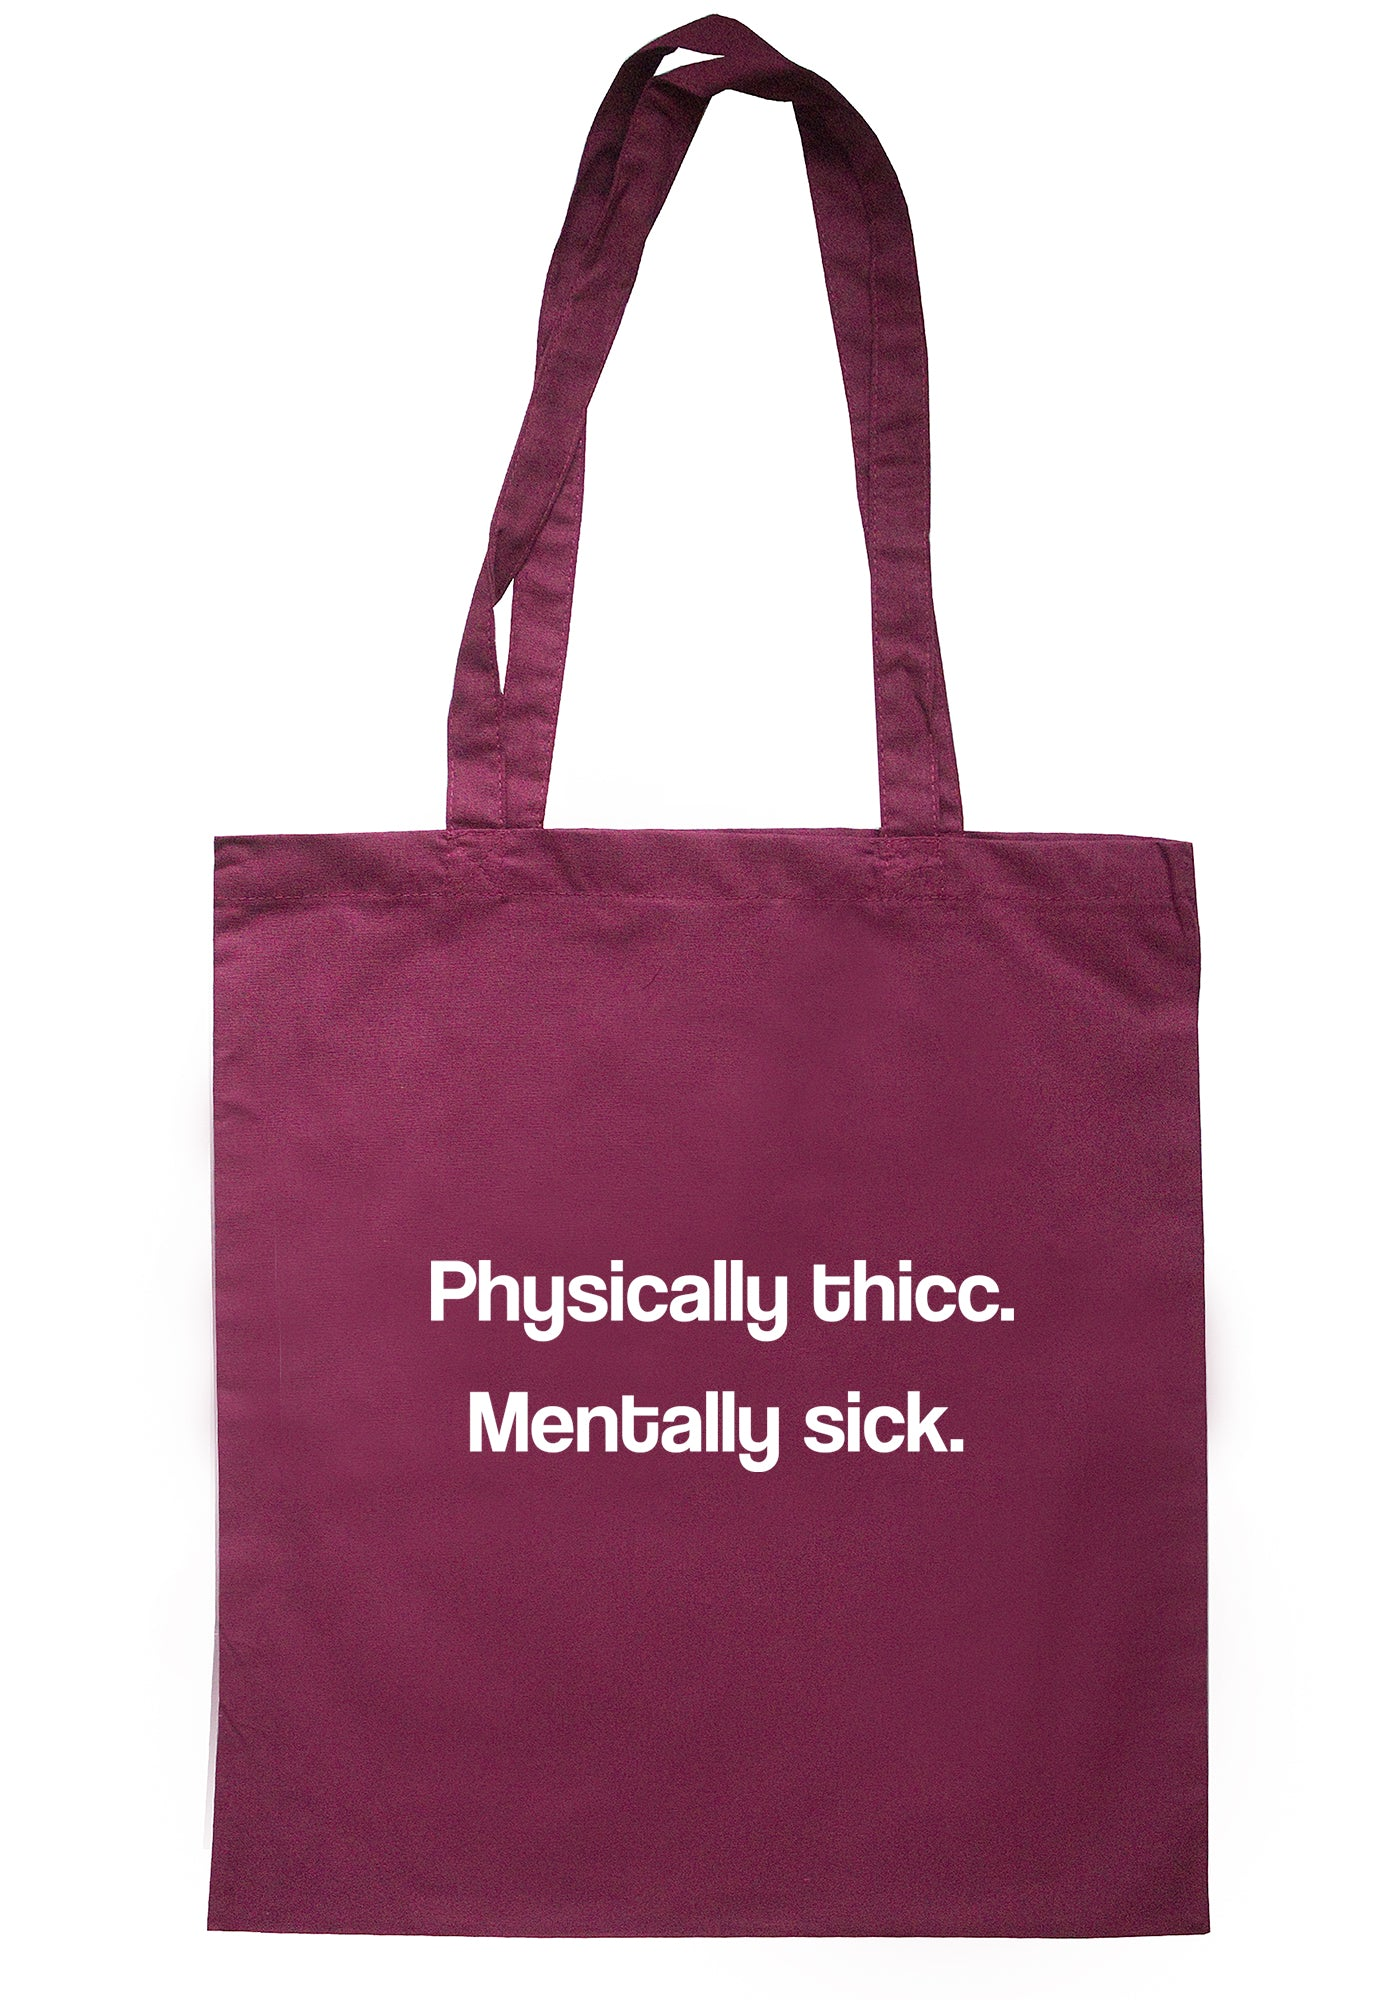 Physically Thicc, Mentally Sick Tote Bag S1112 - Illustrated Identity Ltd.